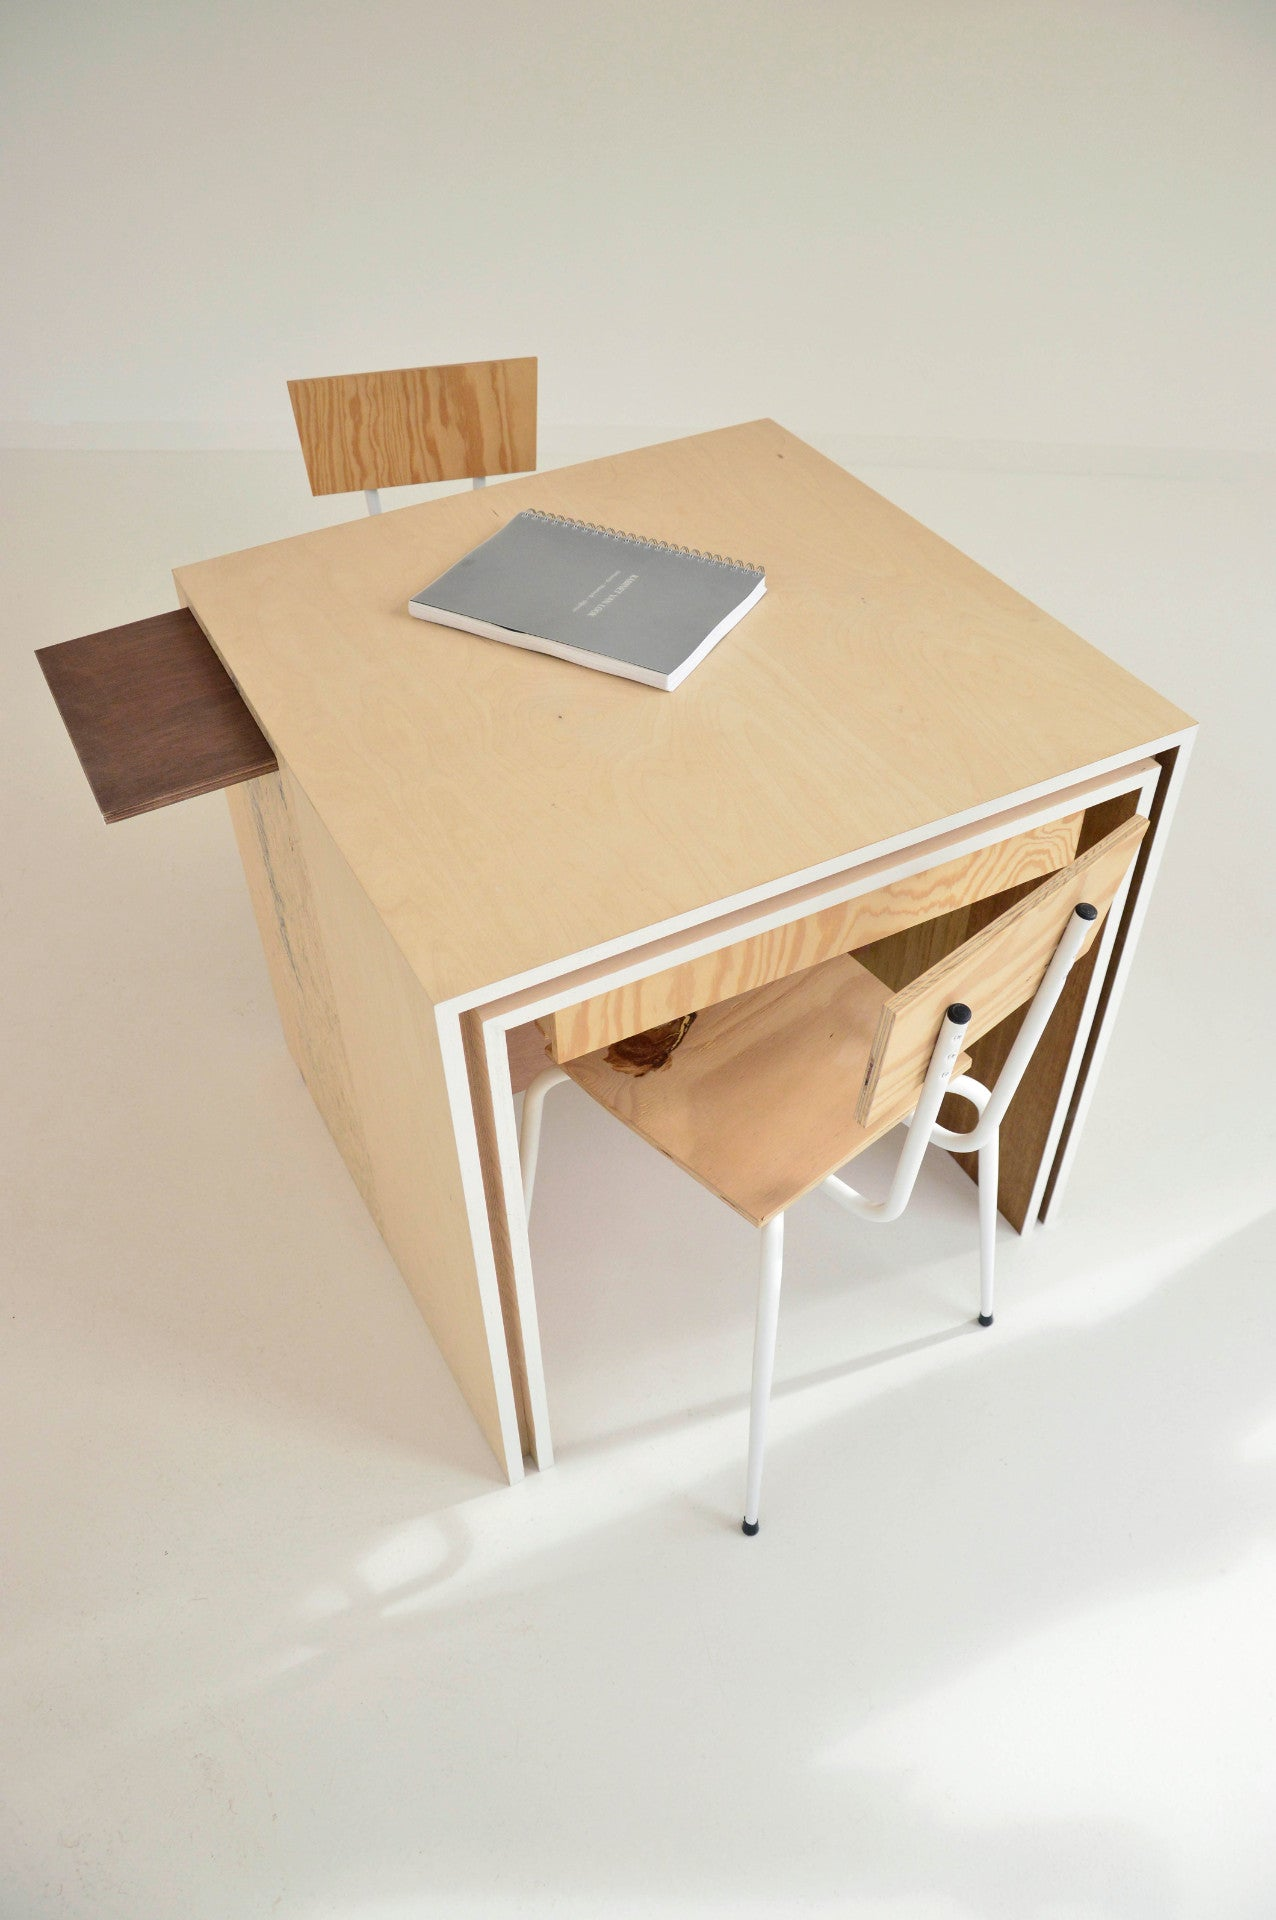 Custom designed desk with extendable elements